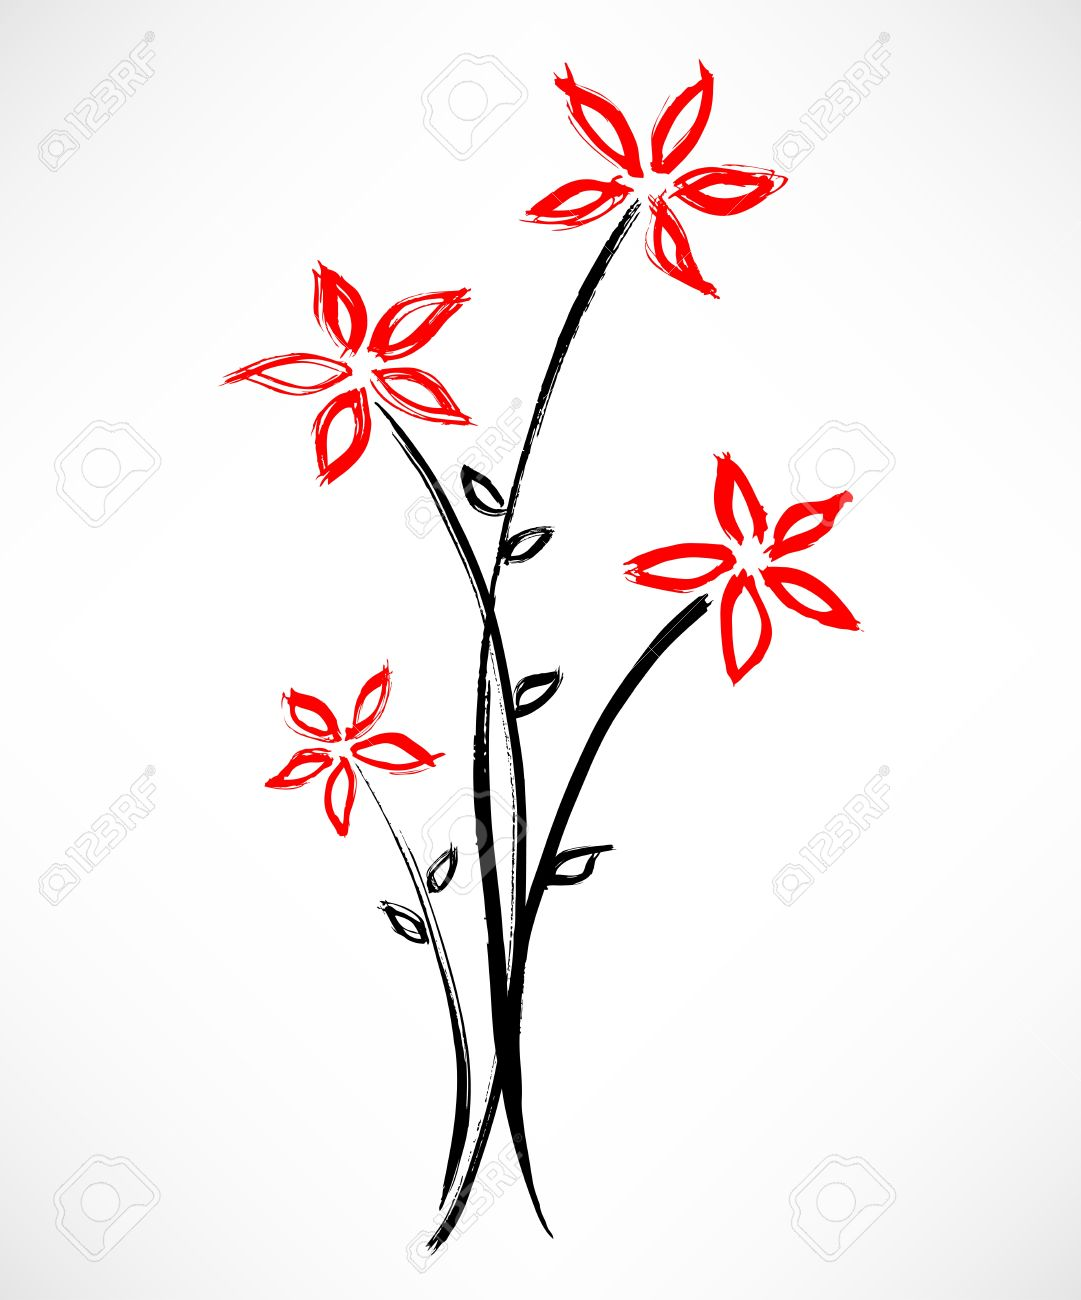 Simple Flower Painting Royalty Free Cliparts Vectors And Stock